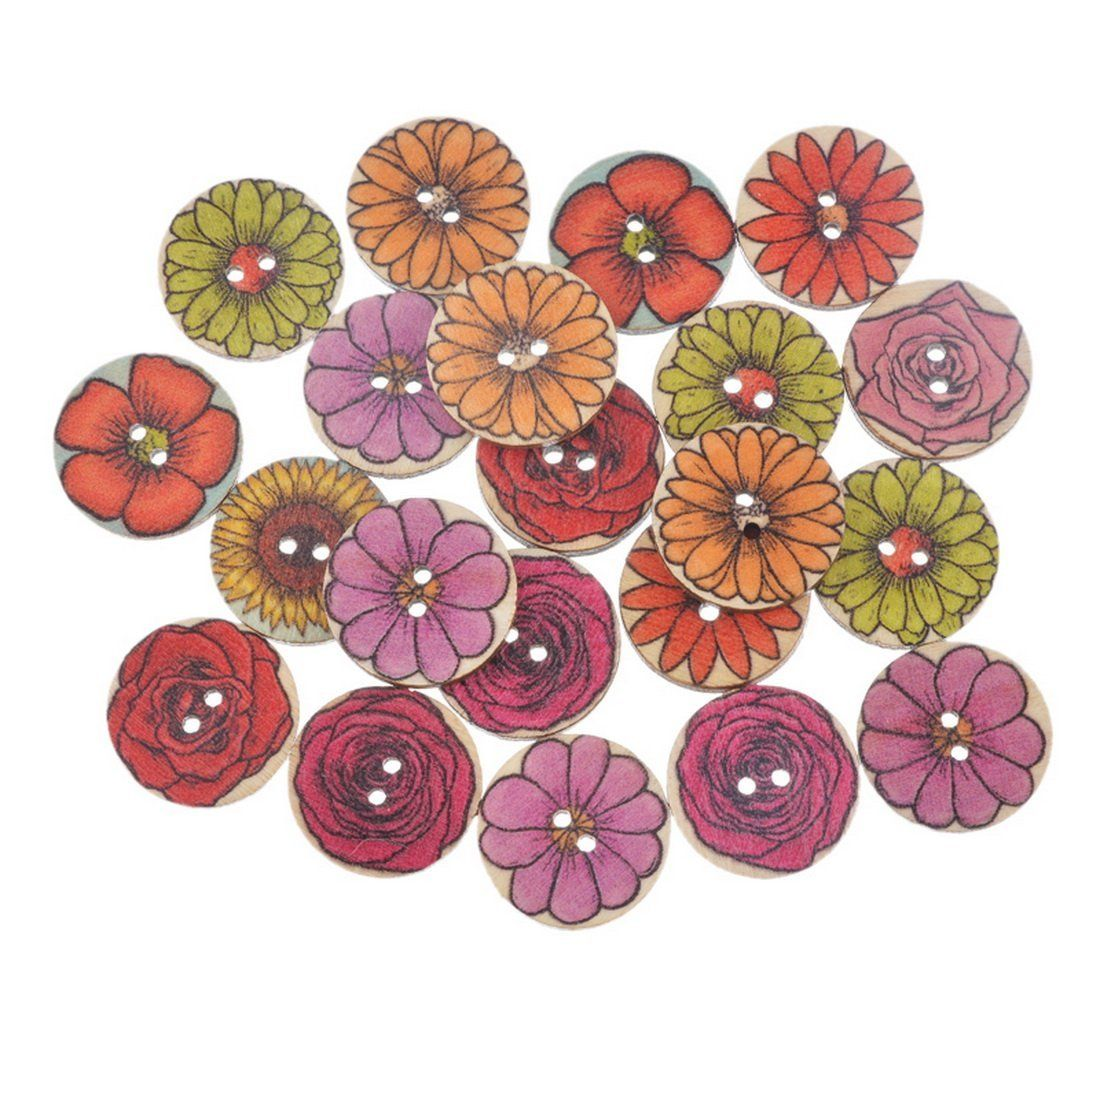 Souarts random mixed flower pattern round 2 holes wood wooden souarts random mixed flower pattern round 2 holes wood wooden buttons 20mm pack of 50pcs jeuxipadfo Choice Image